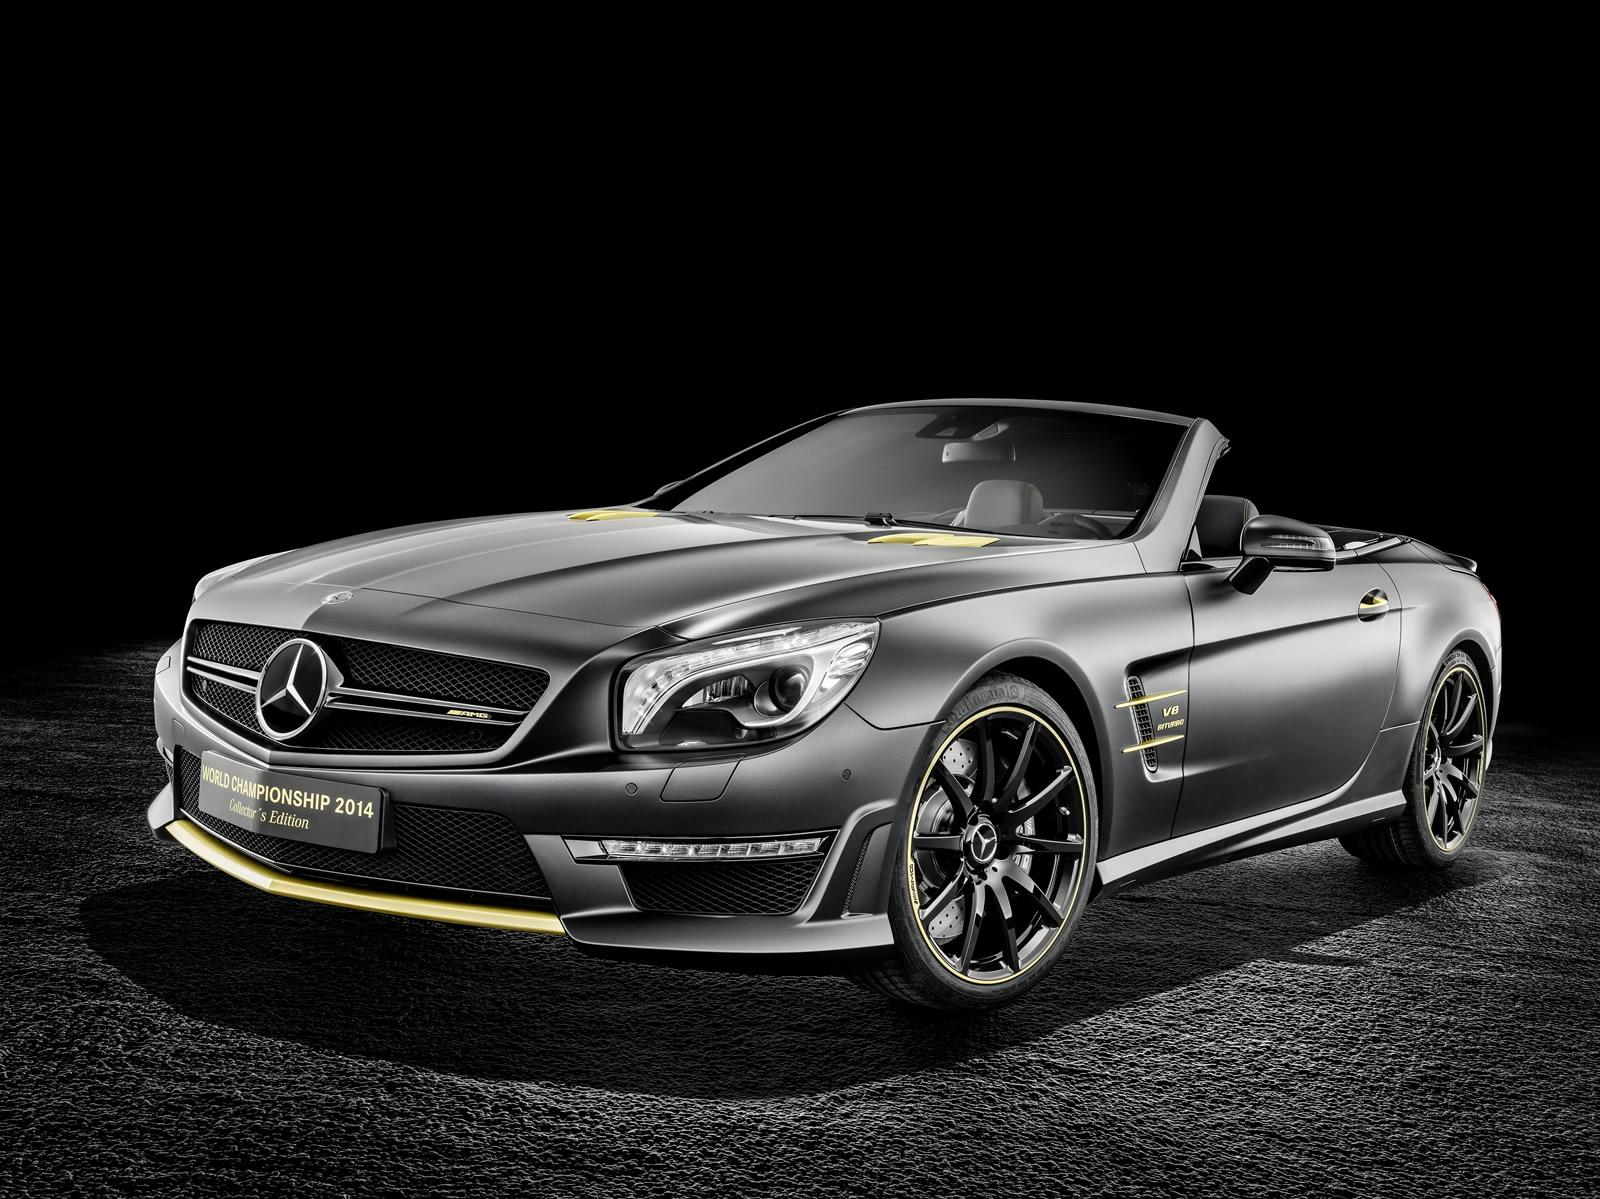 мерседес-бенц sl 63 amg world championship